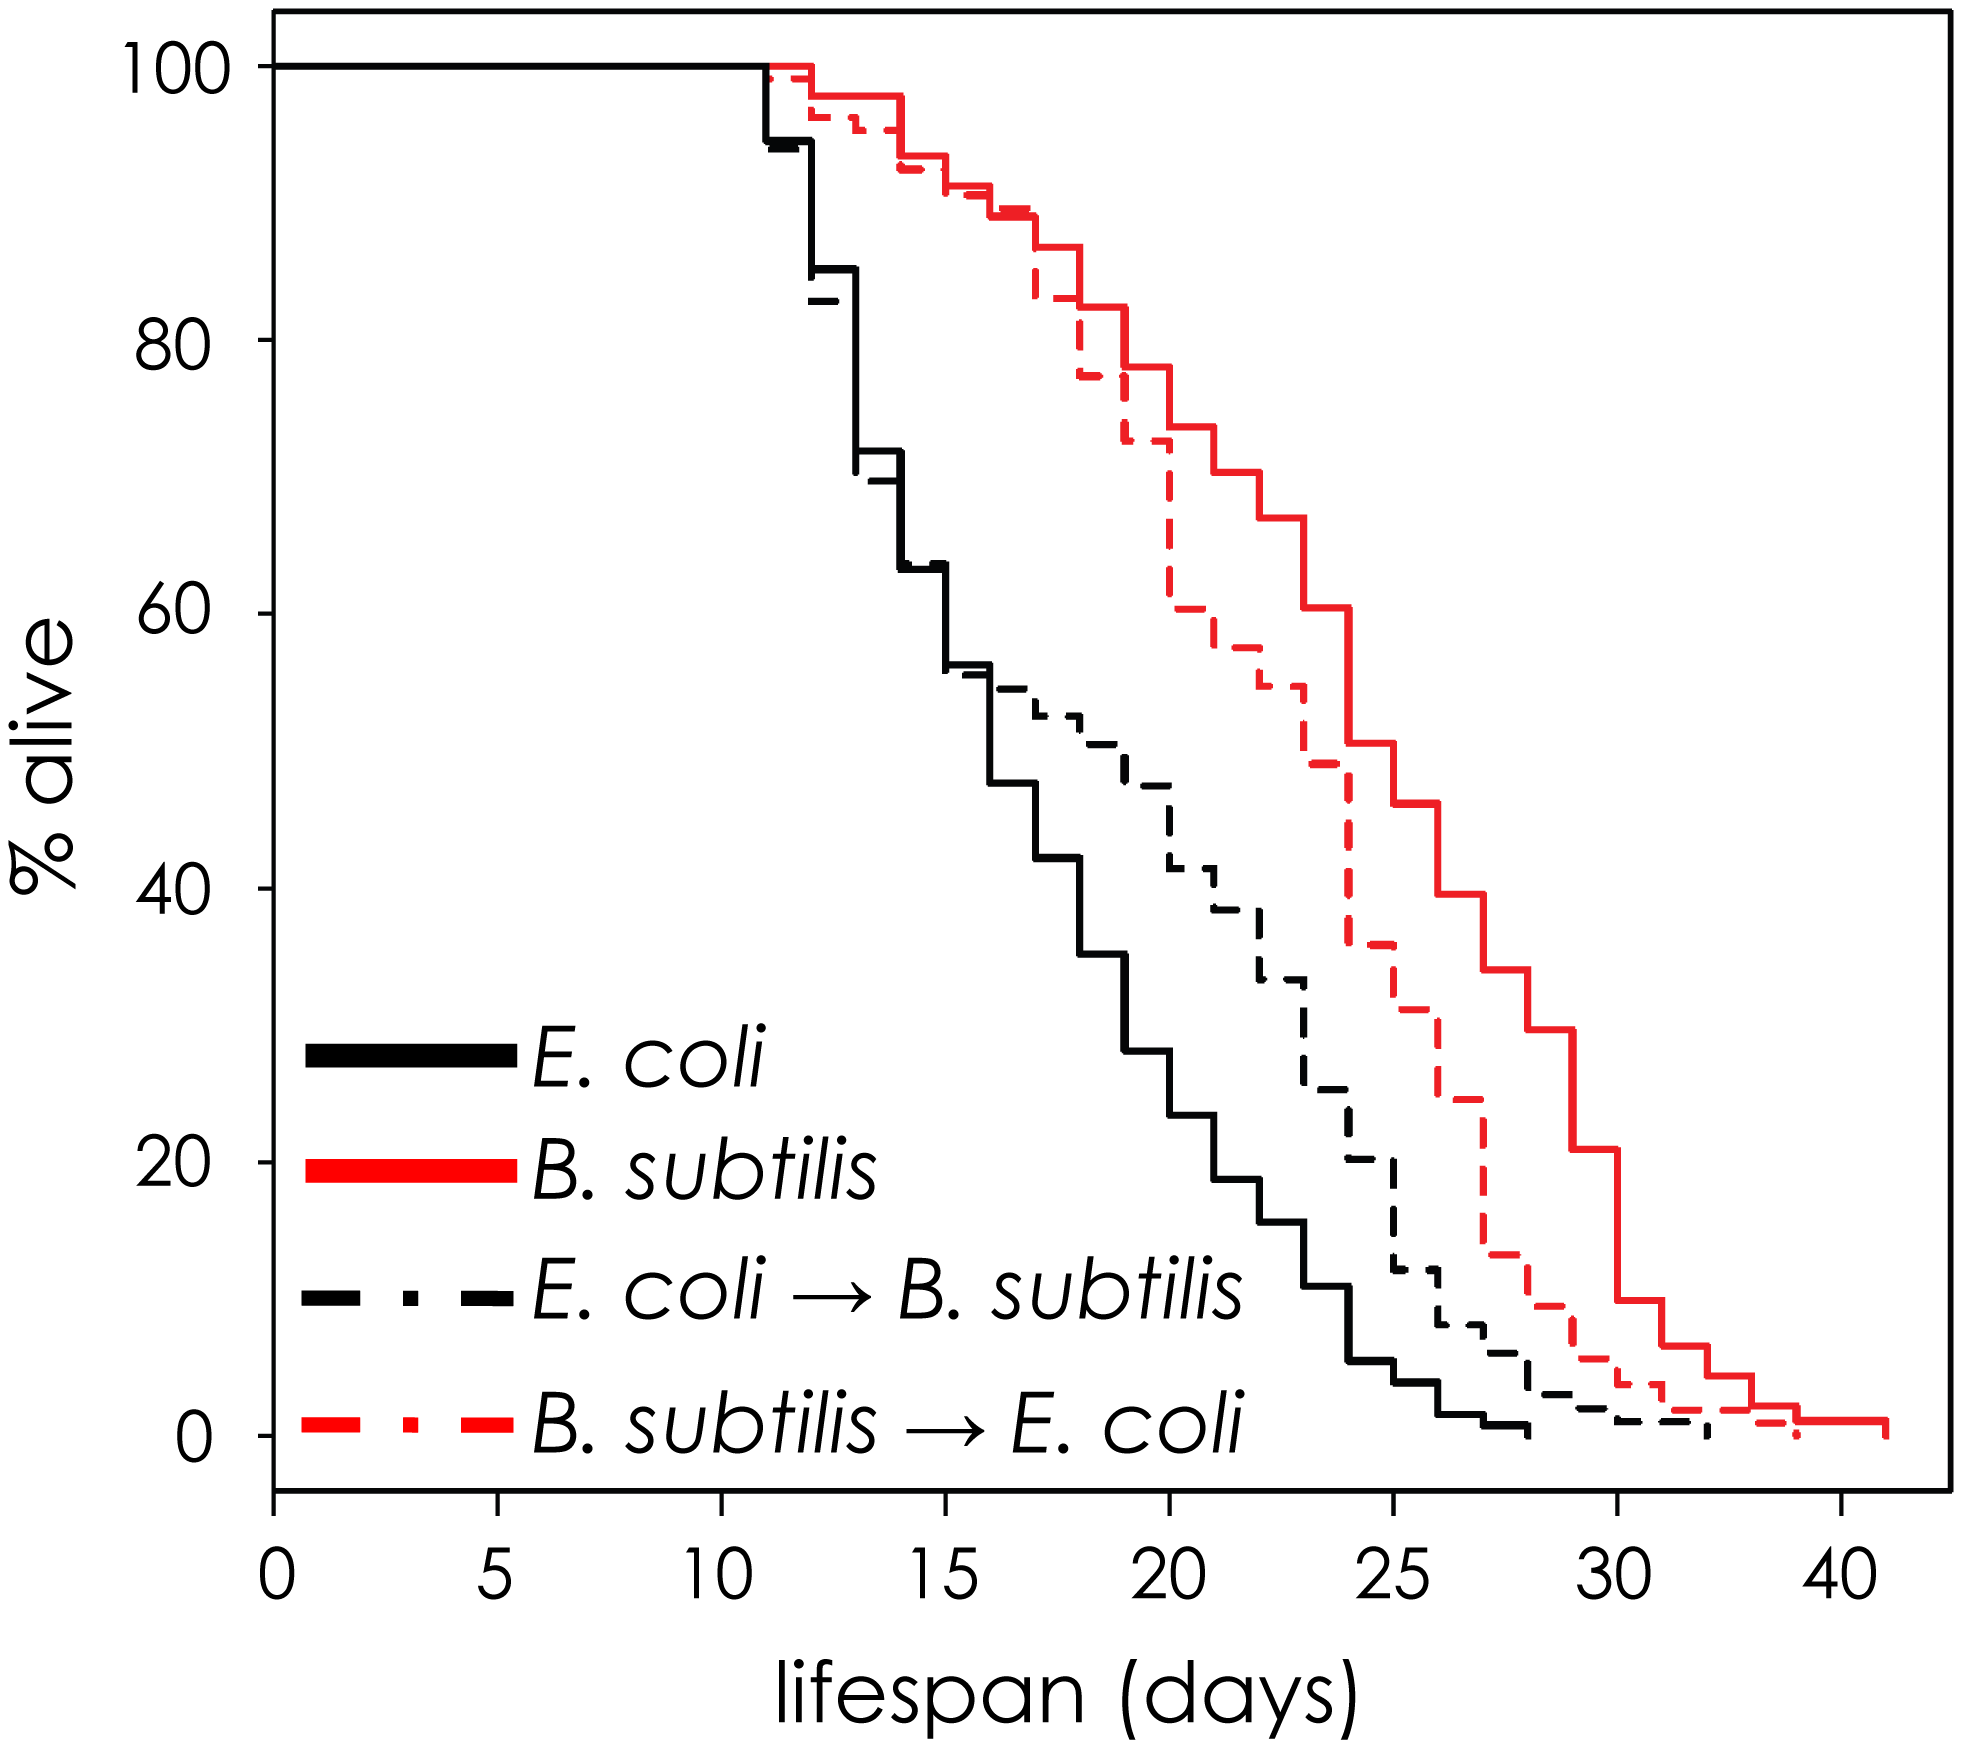 The effect of <i>E. coli</i> pathogenicity persists after worms are shifted to <i>B. subtilis</i>.